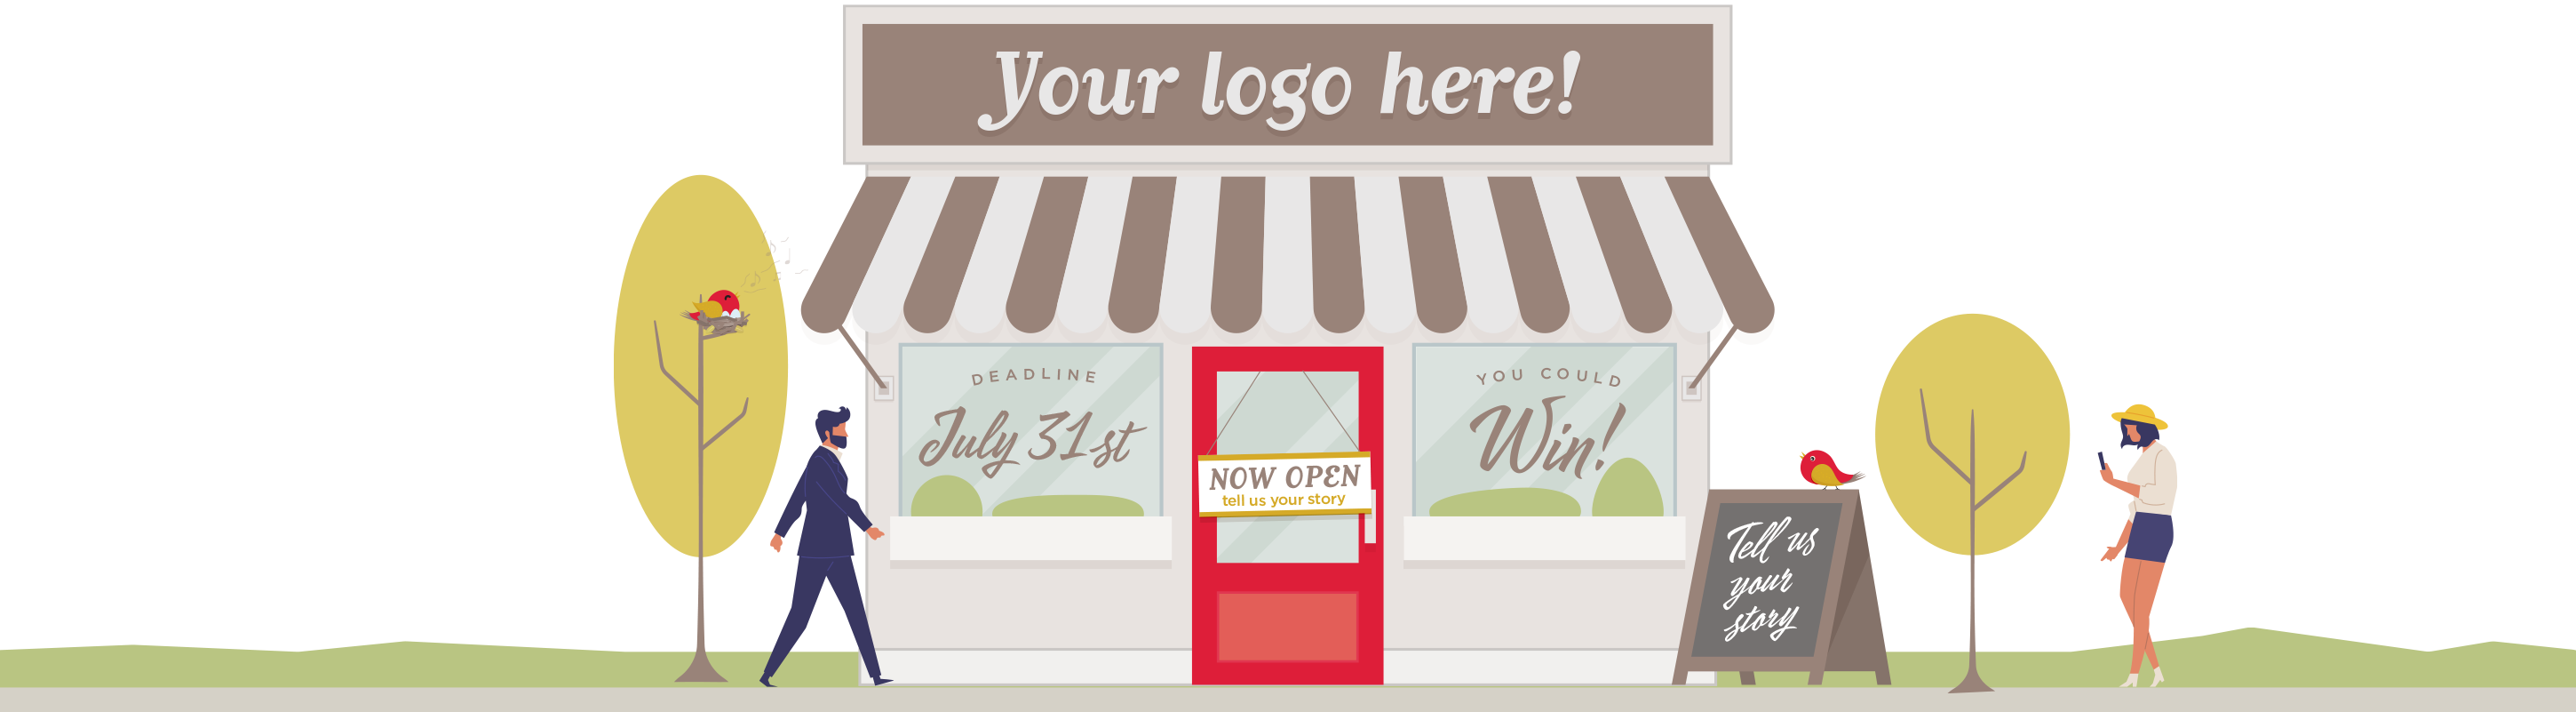 Enter now for a chance to win a free logo for your business